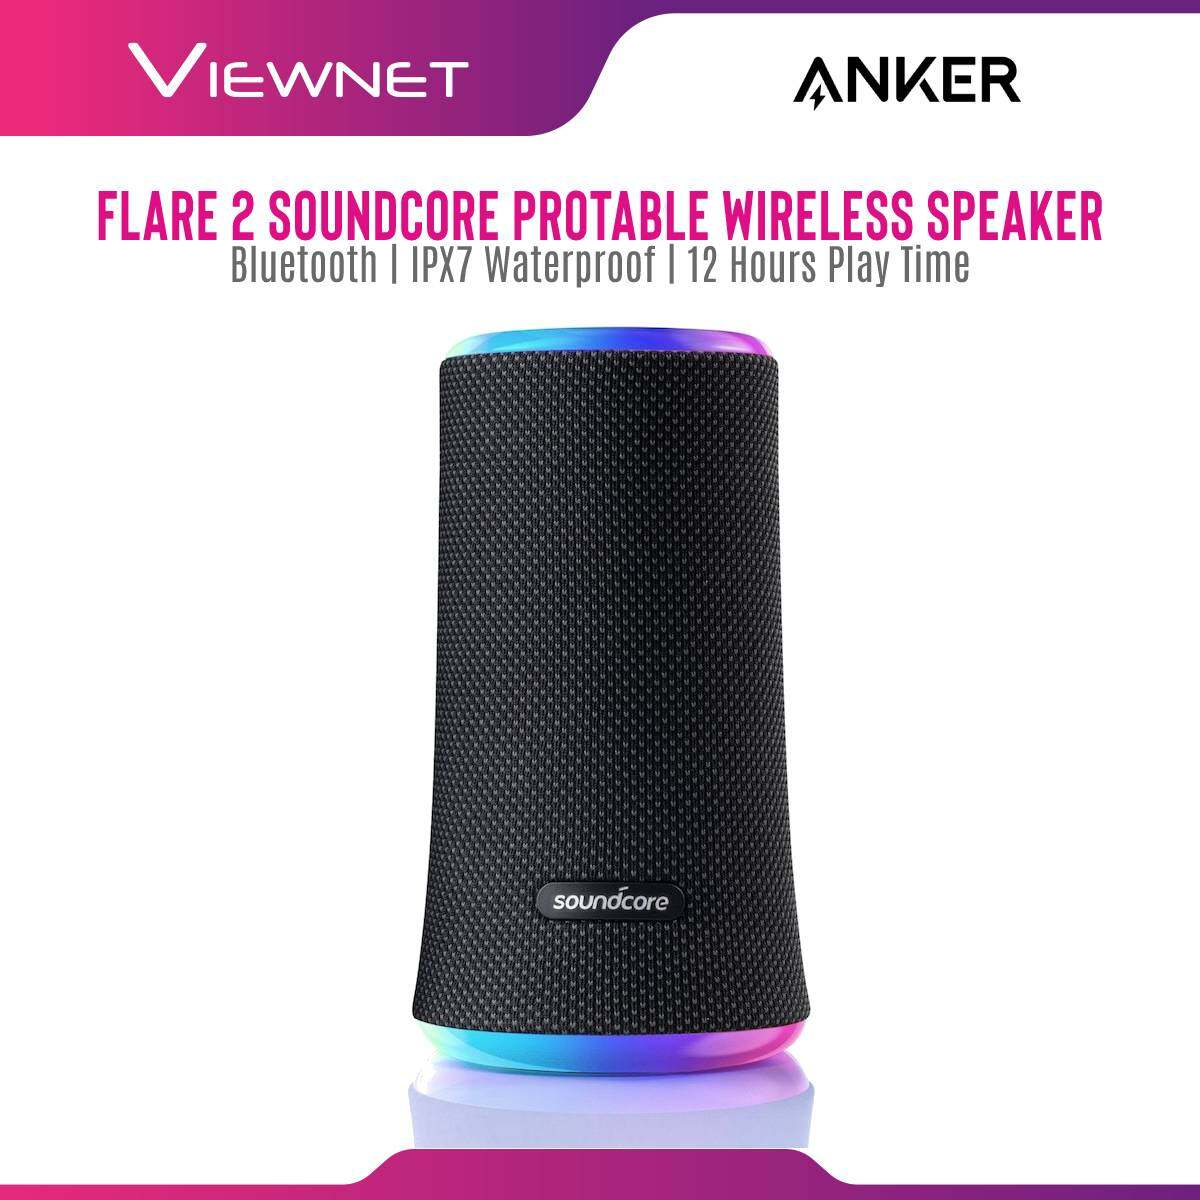 Anker Portable Speaker SoundCore Flare 2 A3165 with PartyCast Technology, Bass Up, Multiple Light Modes, IPX 7 Waterproof, 12 Hours Play Time,  USB-C Charging